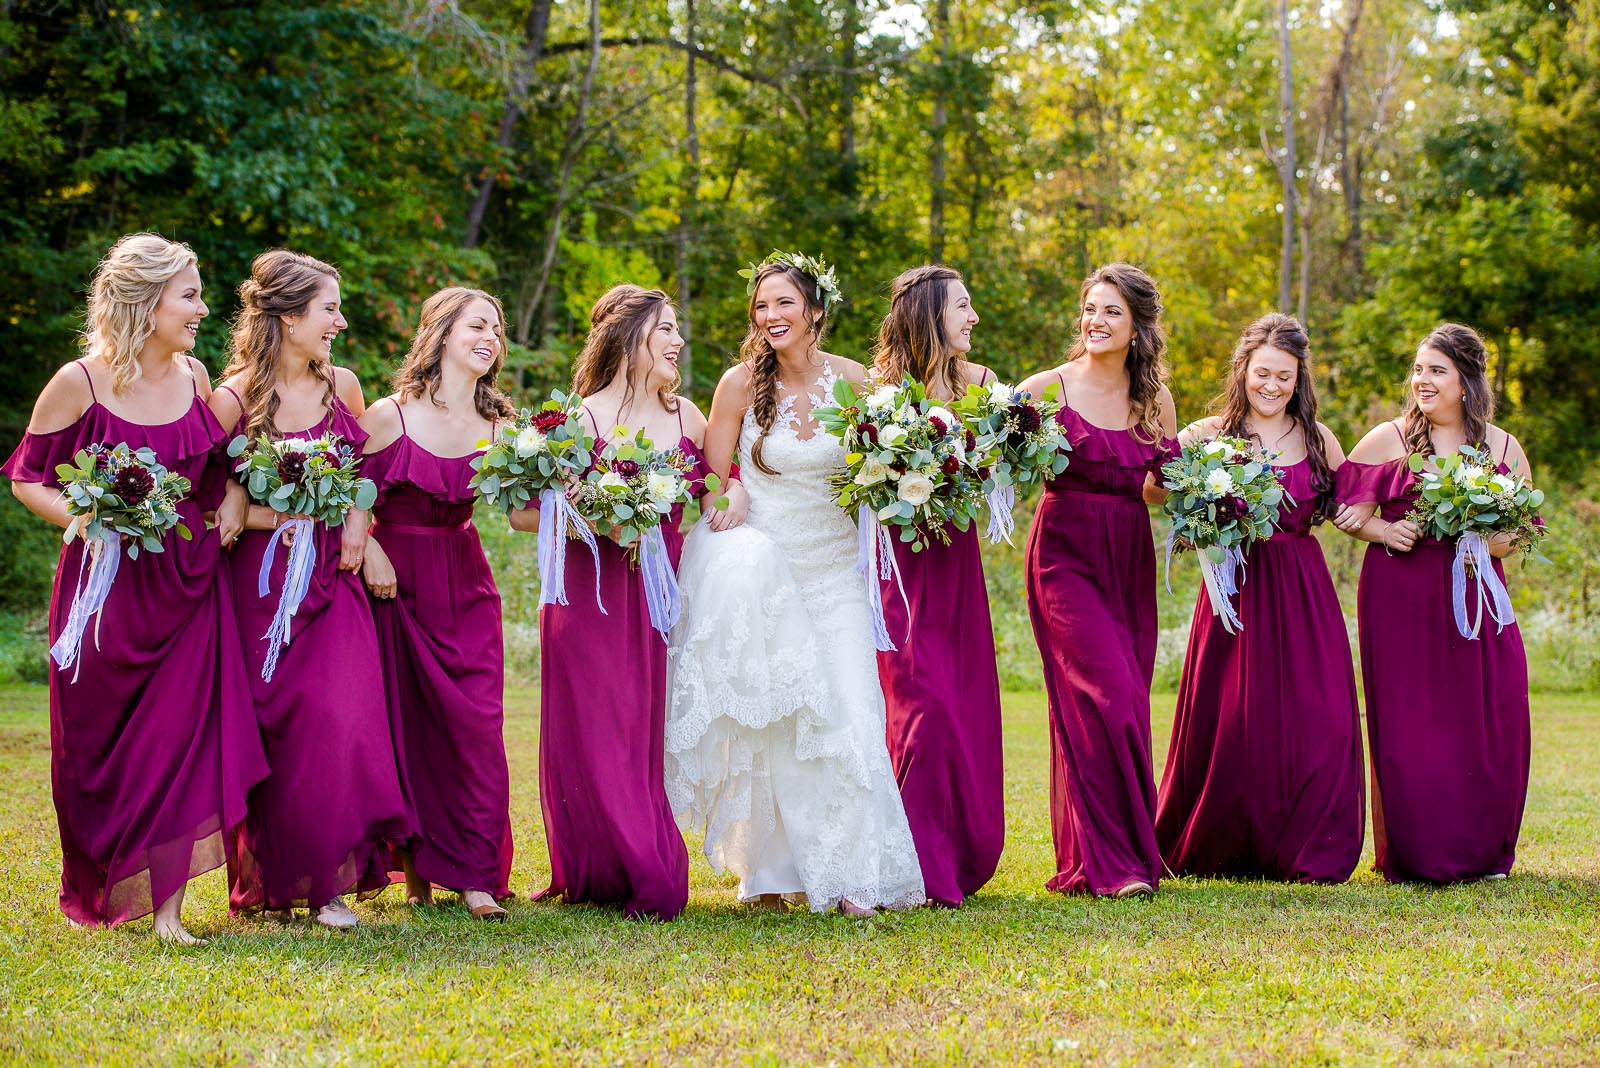 Eric_and_Christy_Photography_Blog_2018_Wed_moments-48